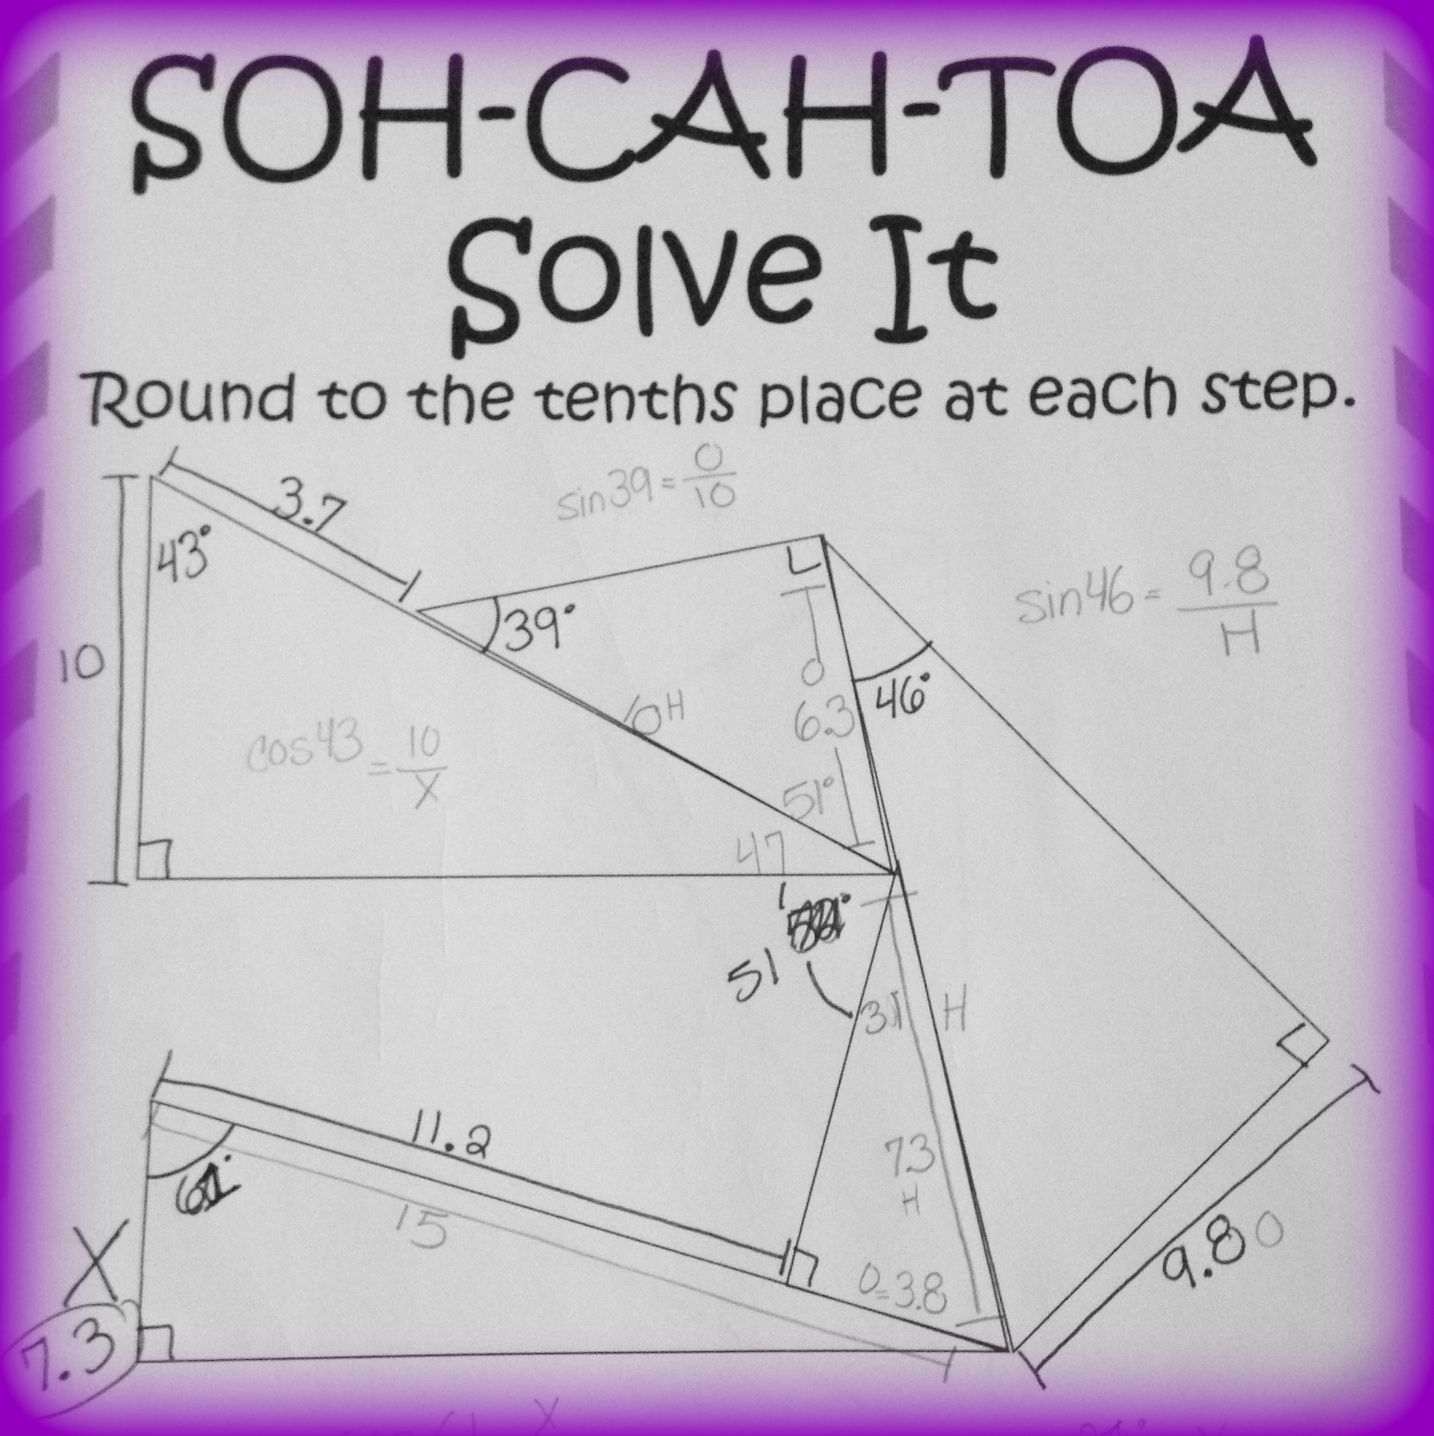 Worksheets Soh Cah Toa Worksheet soh cah toa solve it 3 sine cosine tangent puzzles geometry puzzle using and trigonometry ratios